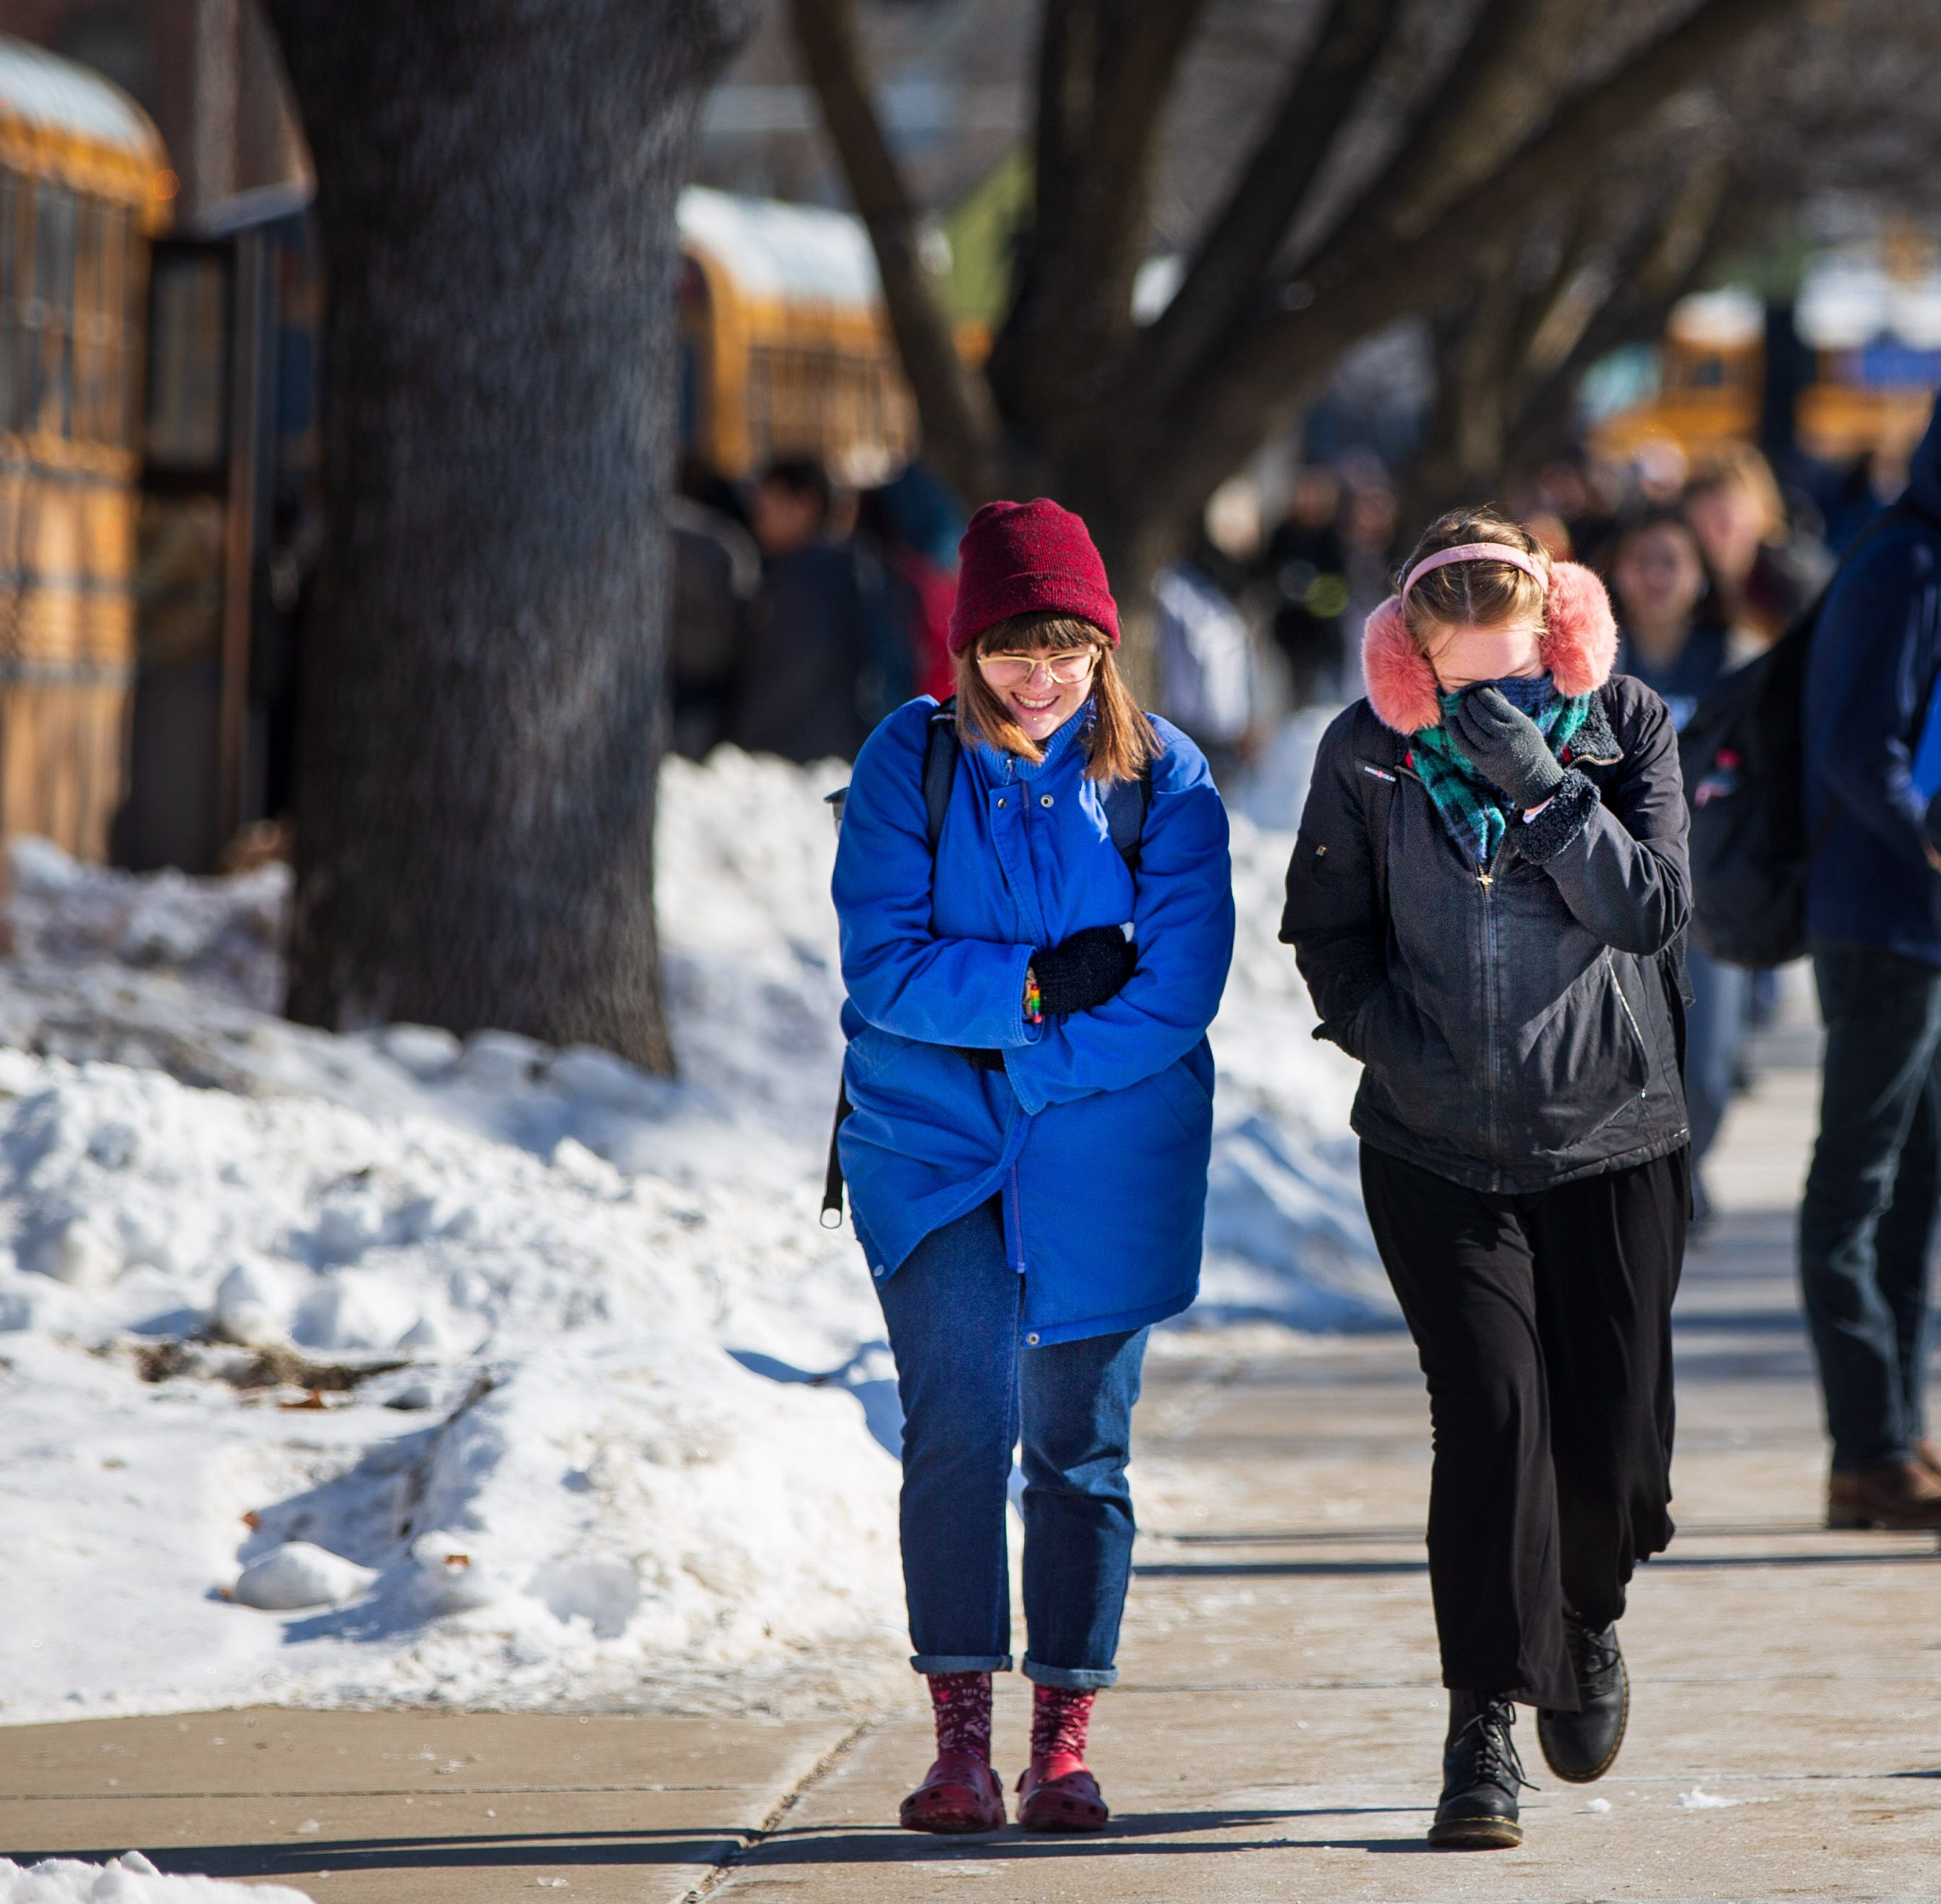 14,000 Iowans want the governor to pardon school snow days. She can't, but here's who can.